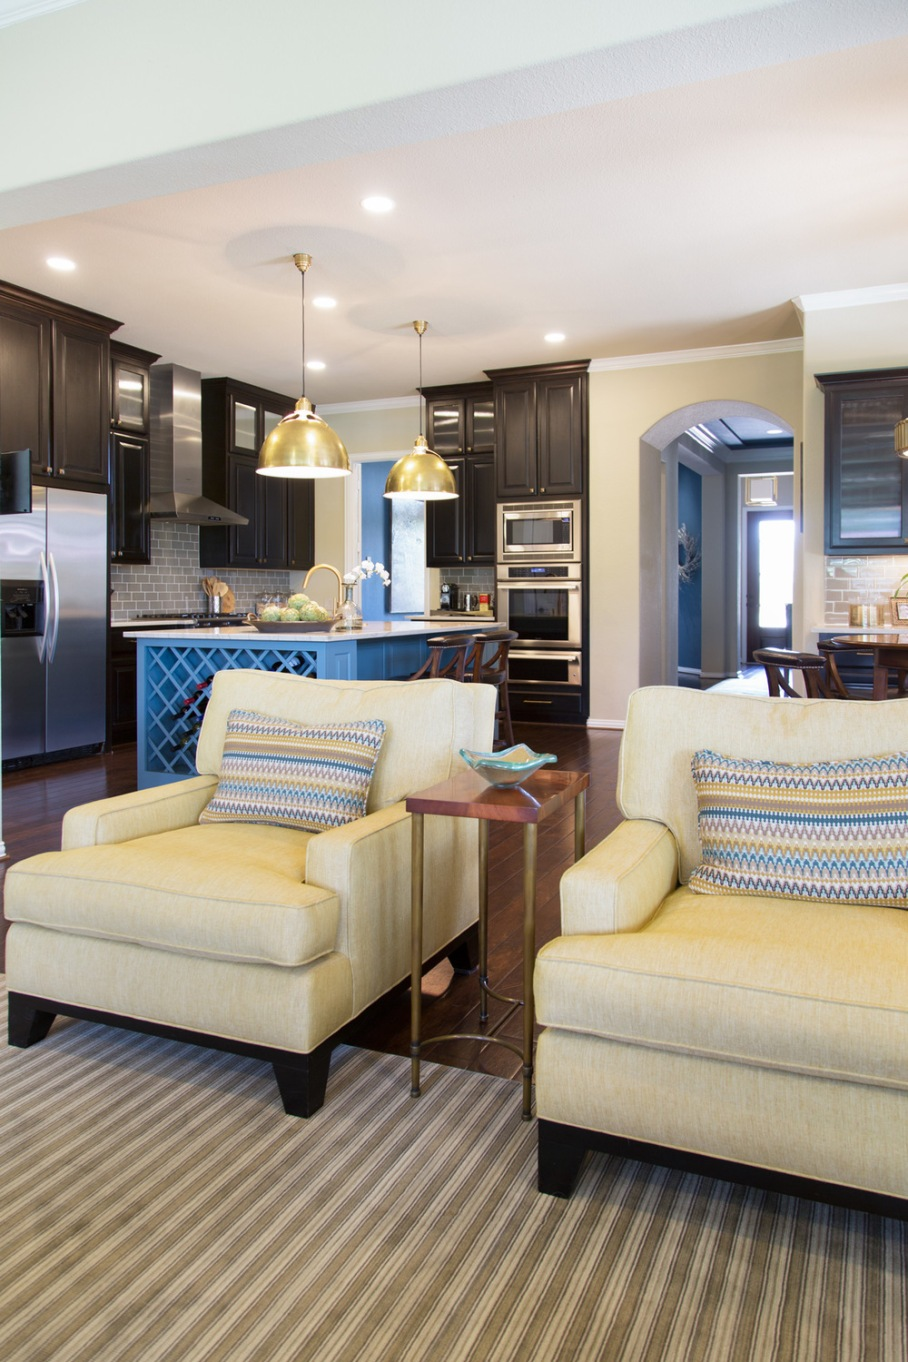 Kitchen / sitting room remodel; stove; cabinetry; countertop; chair; rug; refrigerator | Interior Designer: Carla Aston / Photography by Tori Aston